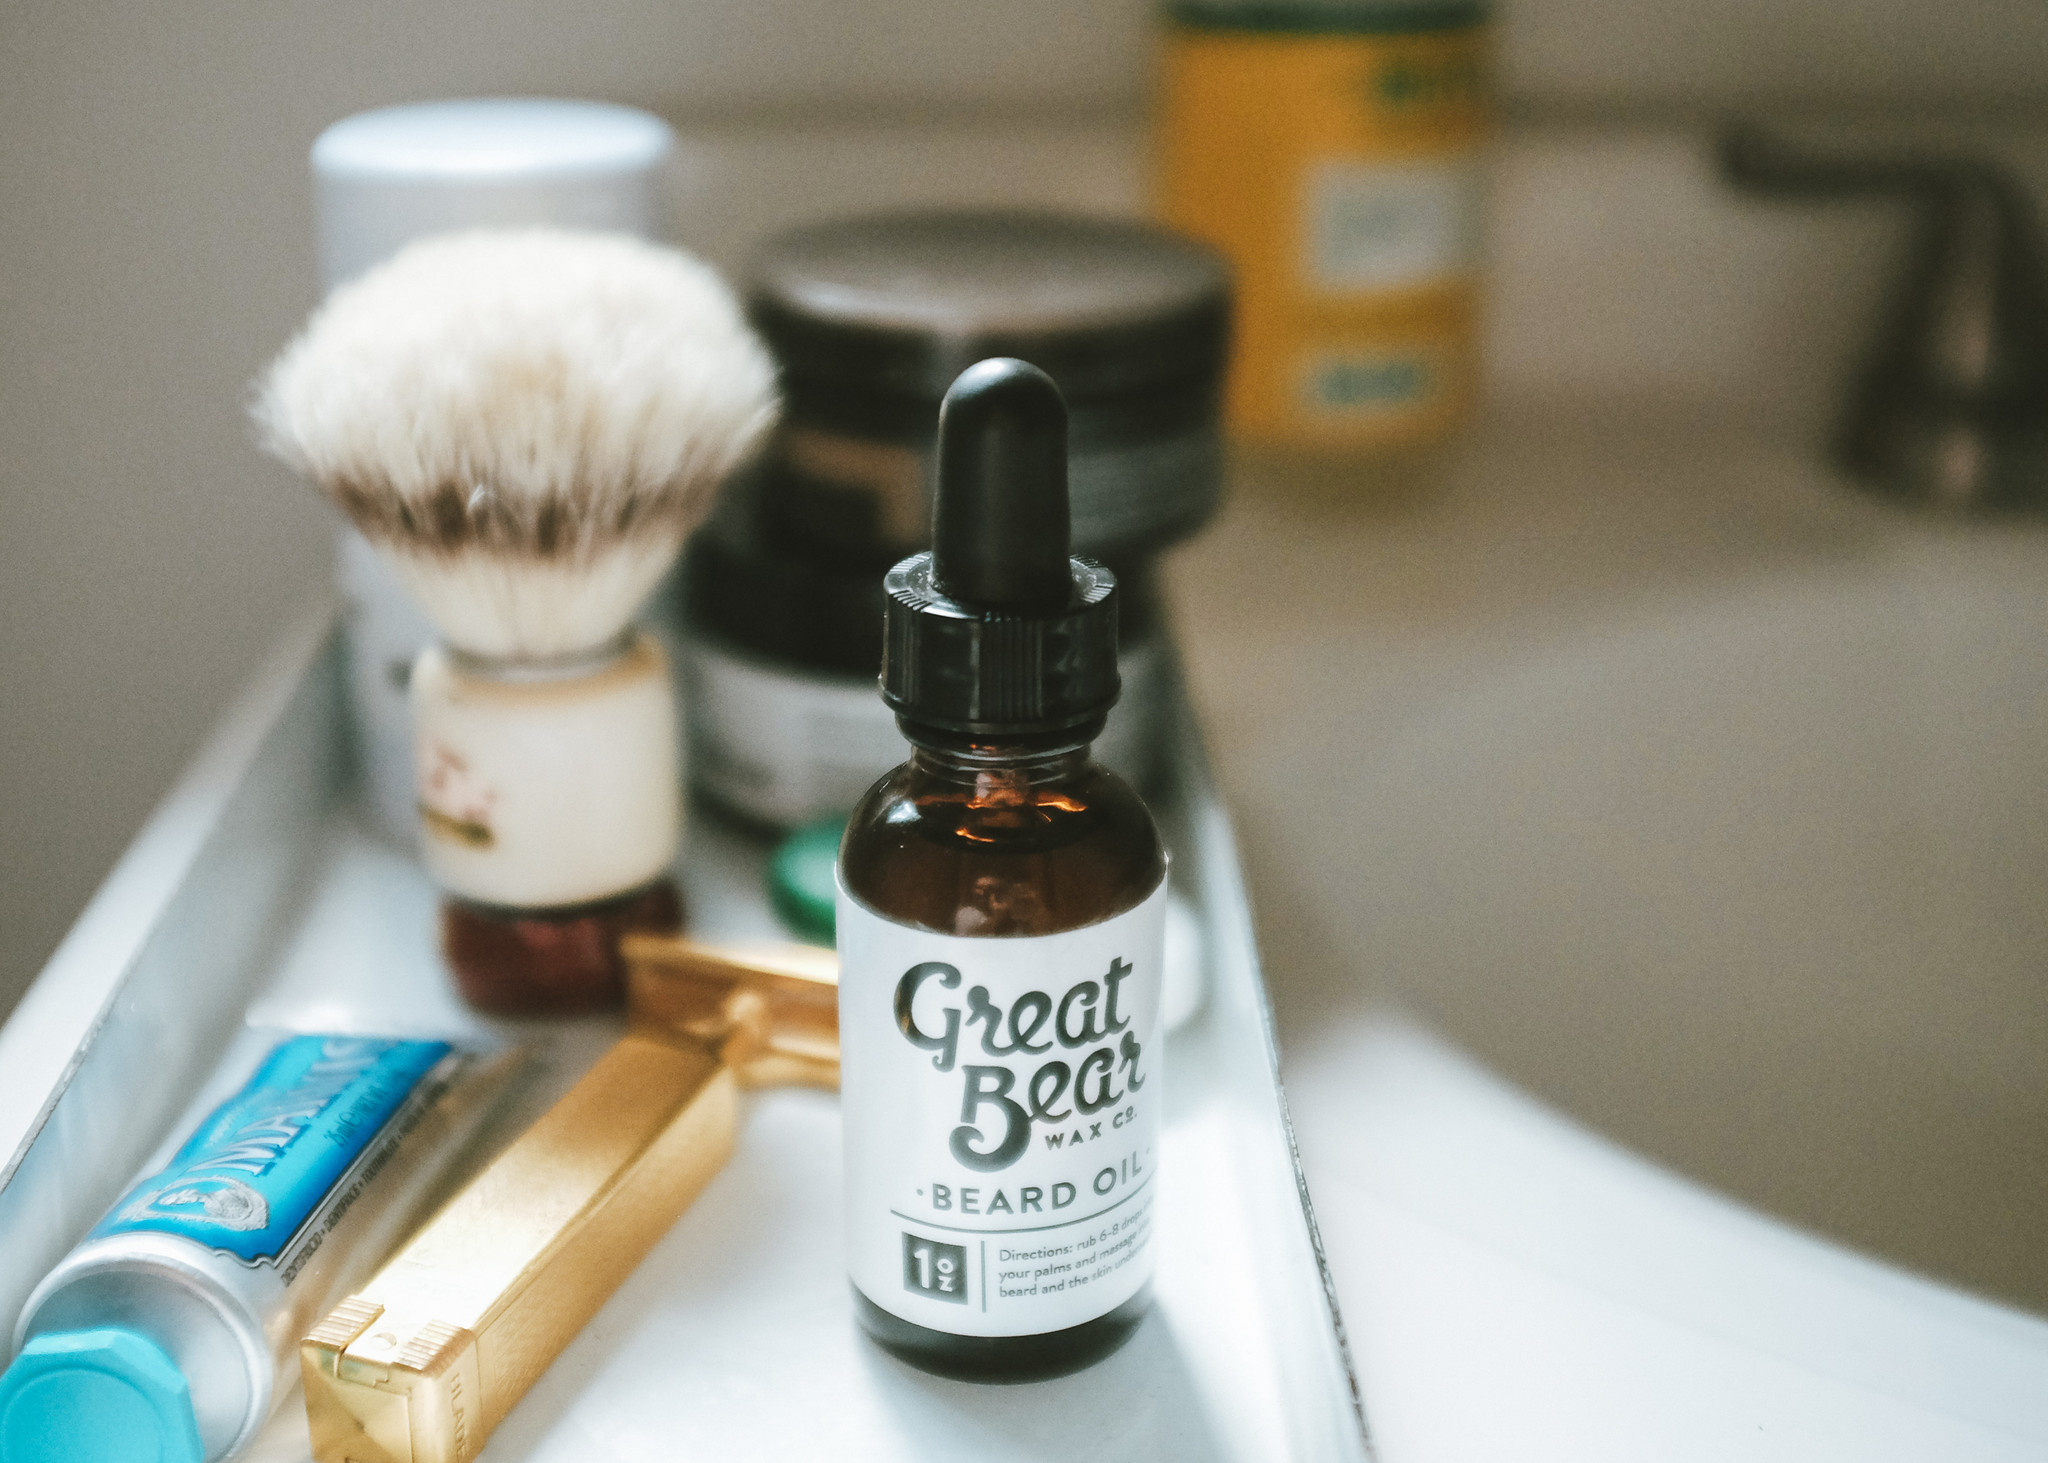 Beard Oil from Great Bear Wax Co.